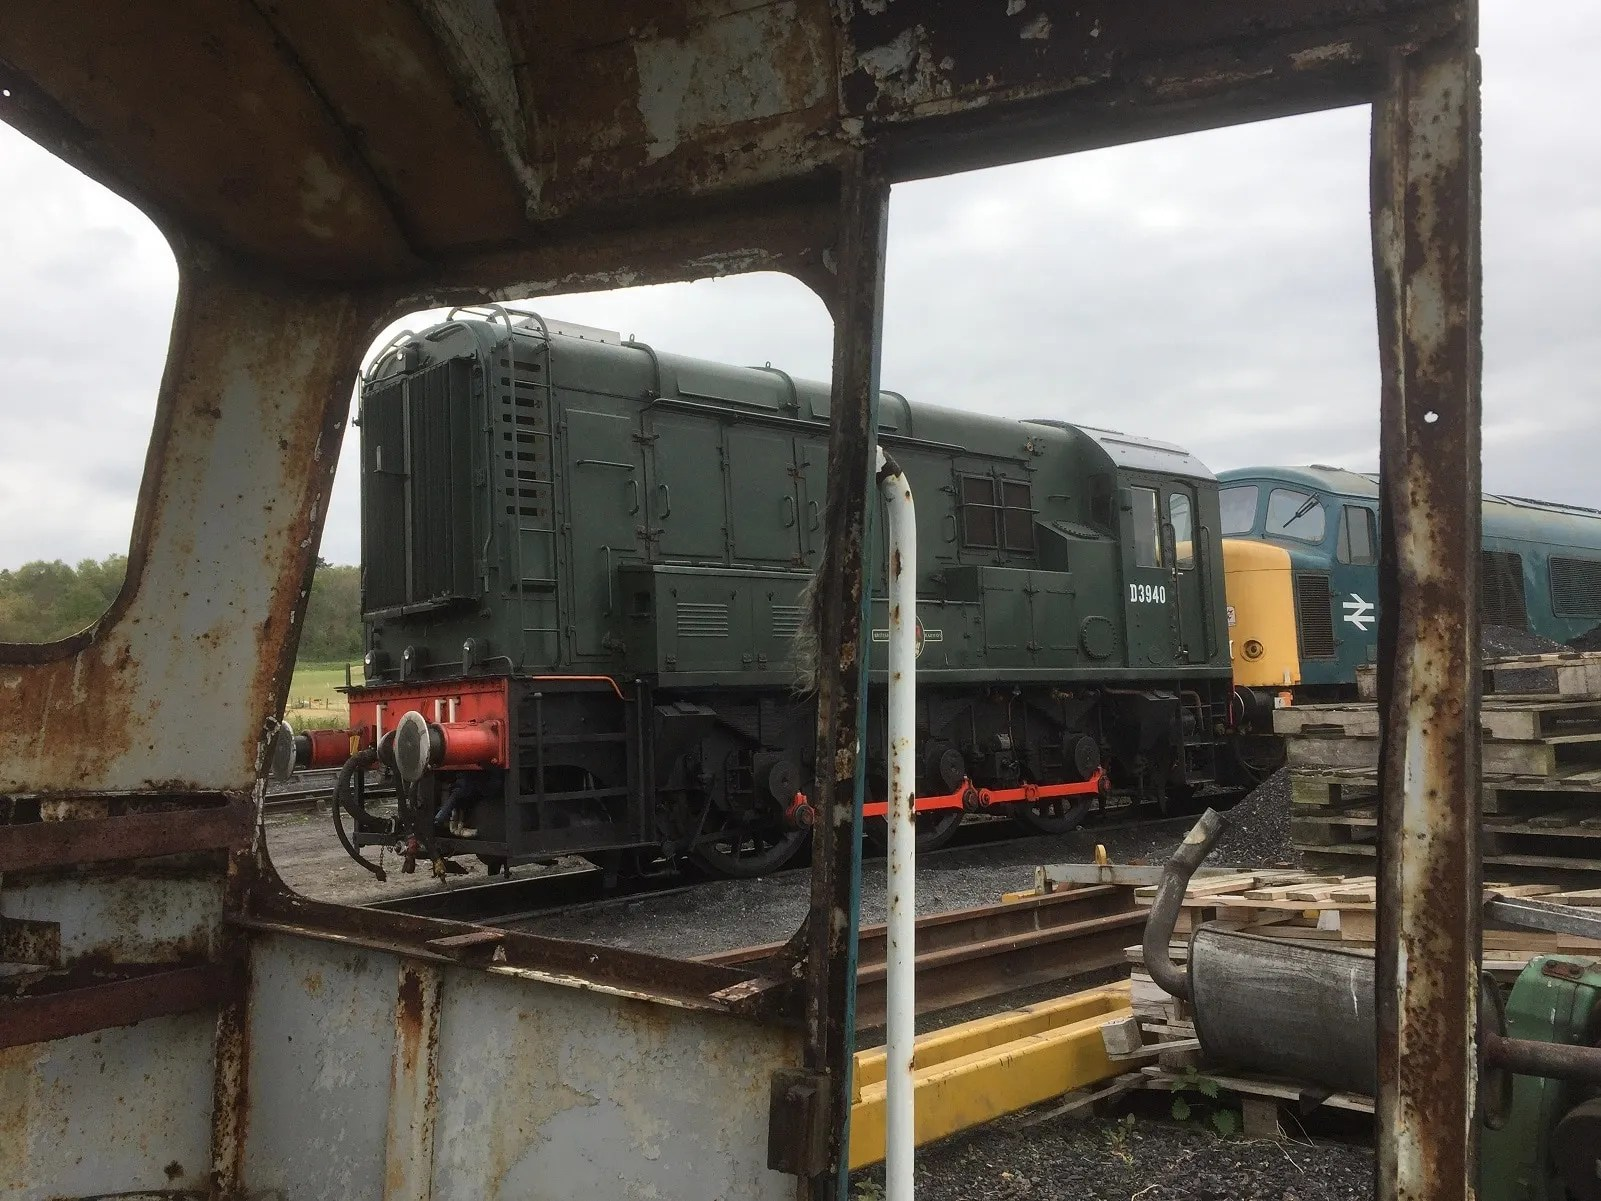 Class 08 D3940 alongside Peak loco 45133 (D40) spied from the cab of D7597 (25247) at the NNR